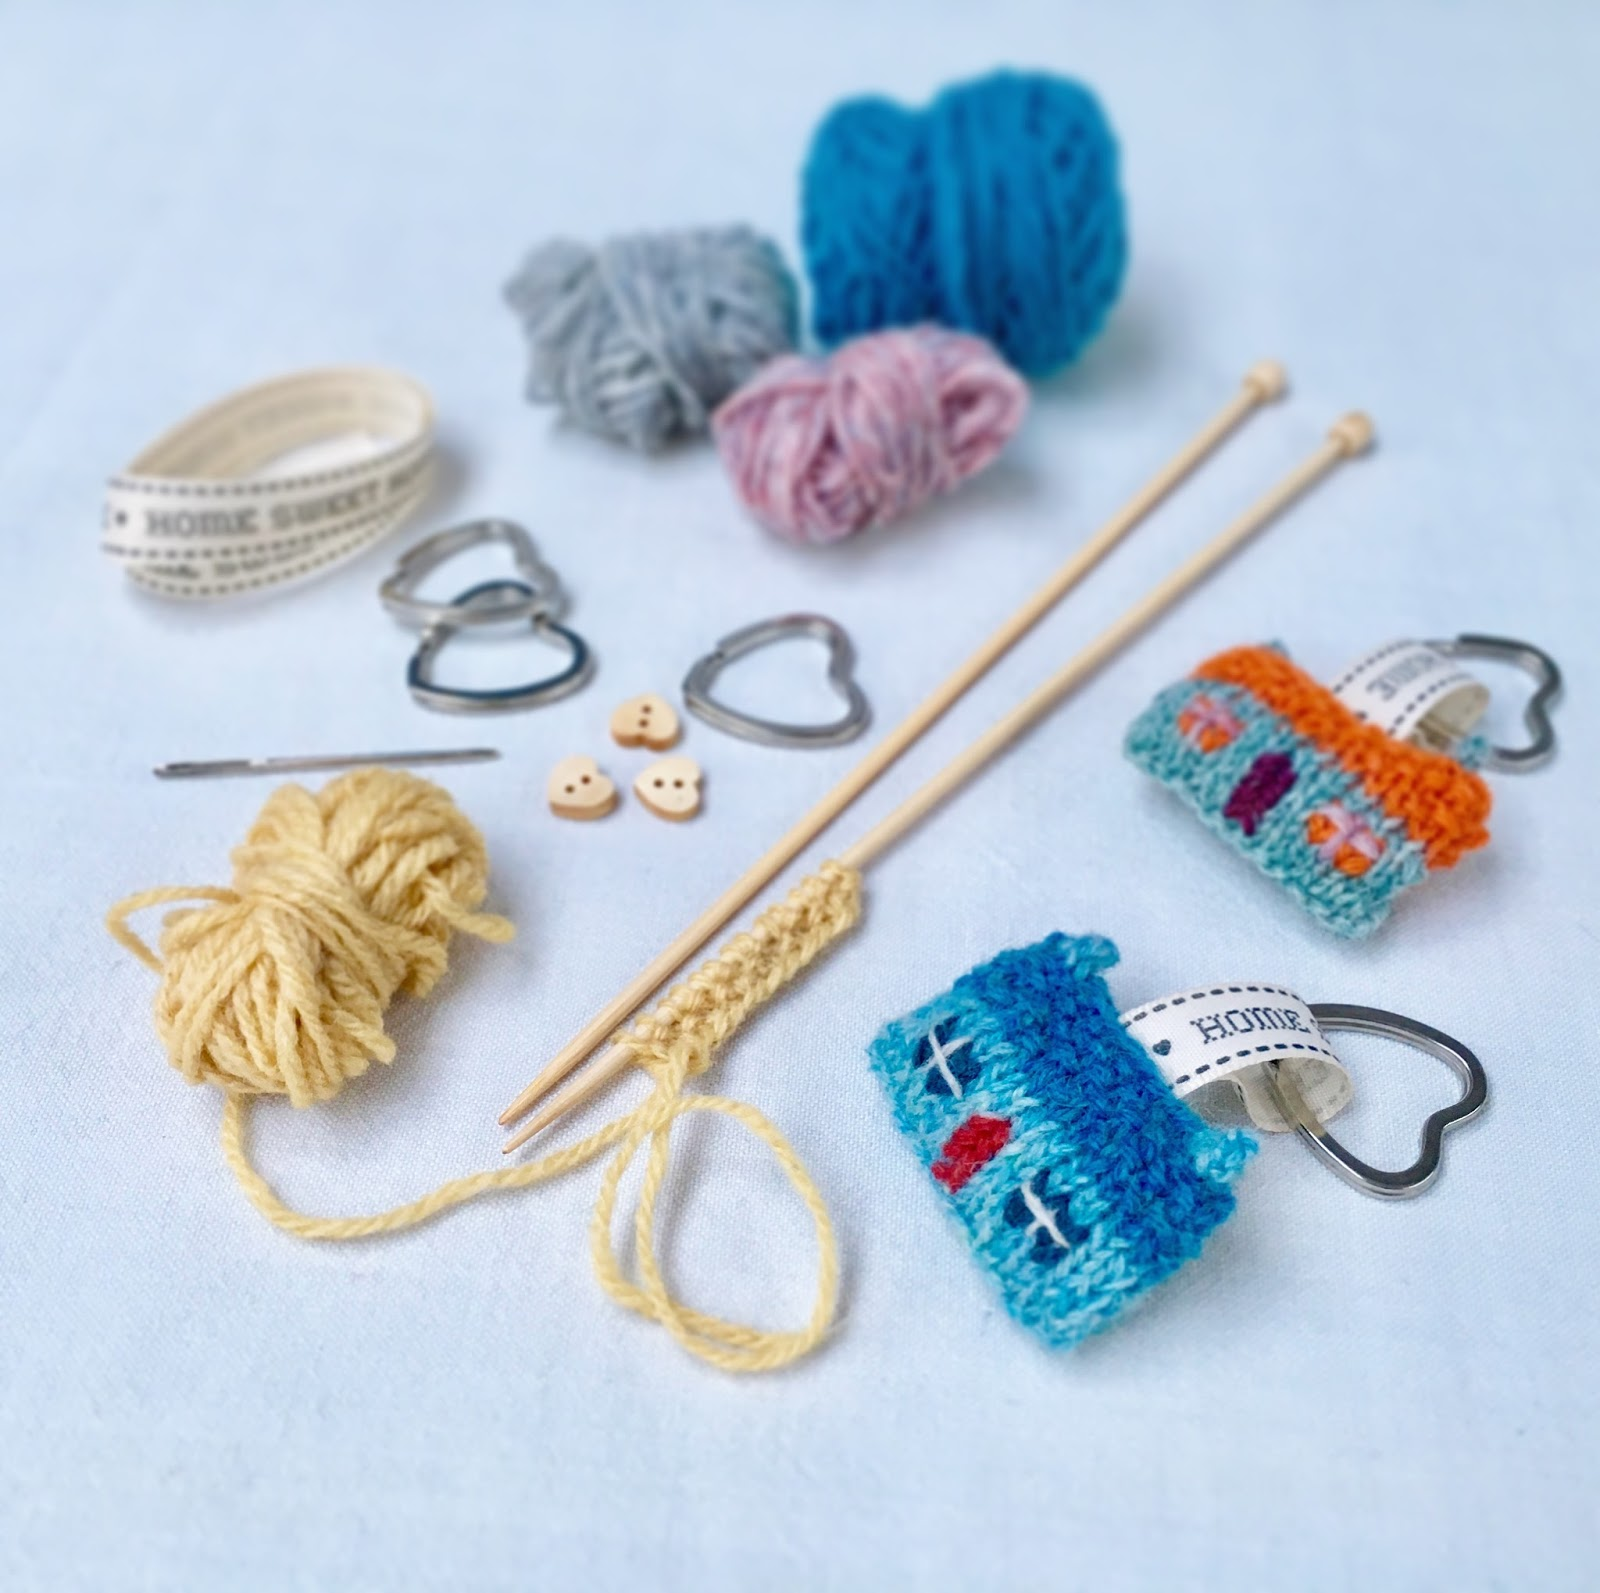 hand the knitting and constructed in but rings brooch tiny on sewn been gift with img similar needles underway are embellishments has key design straight differently knitted slightly things